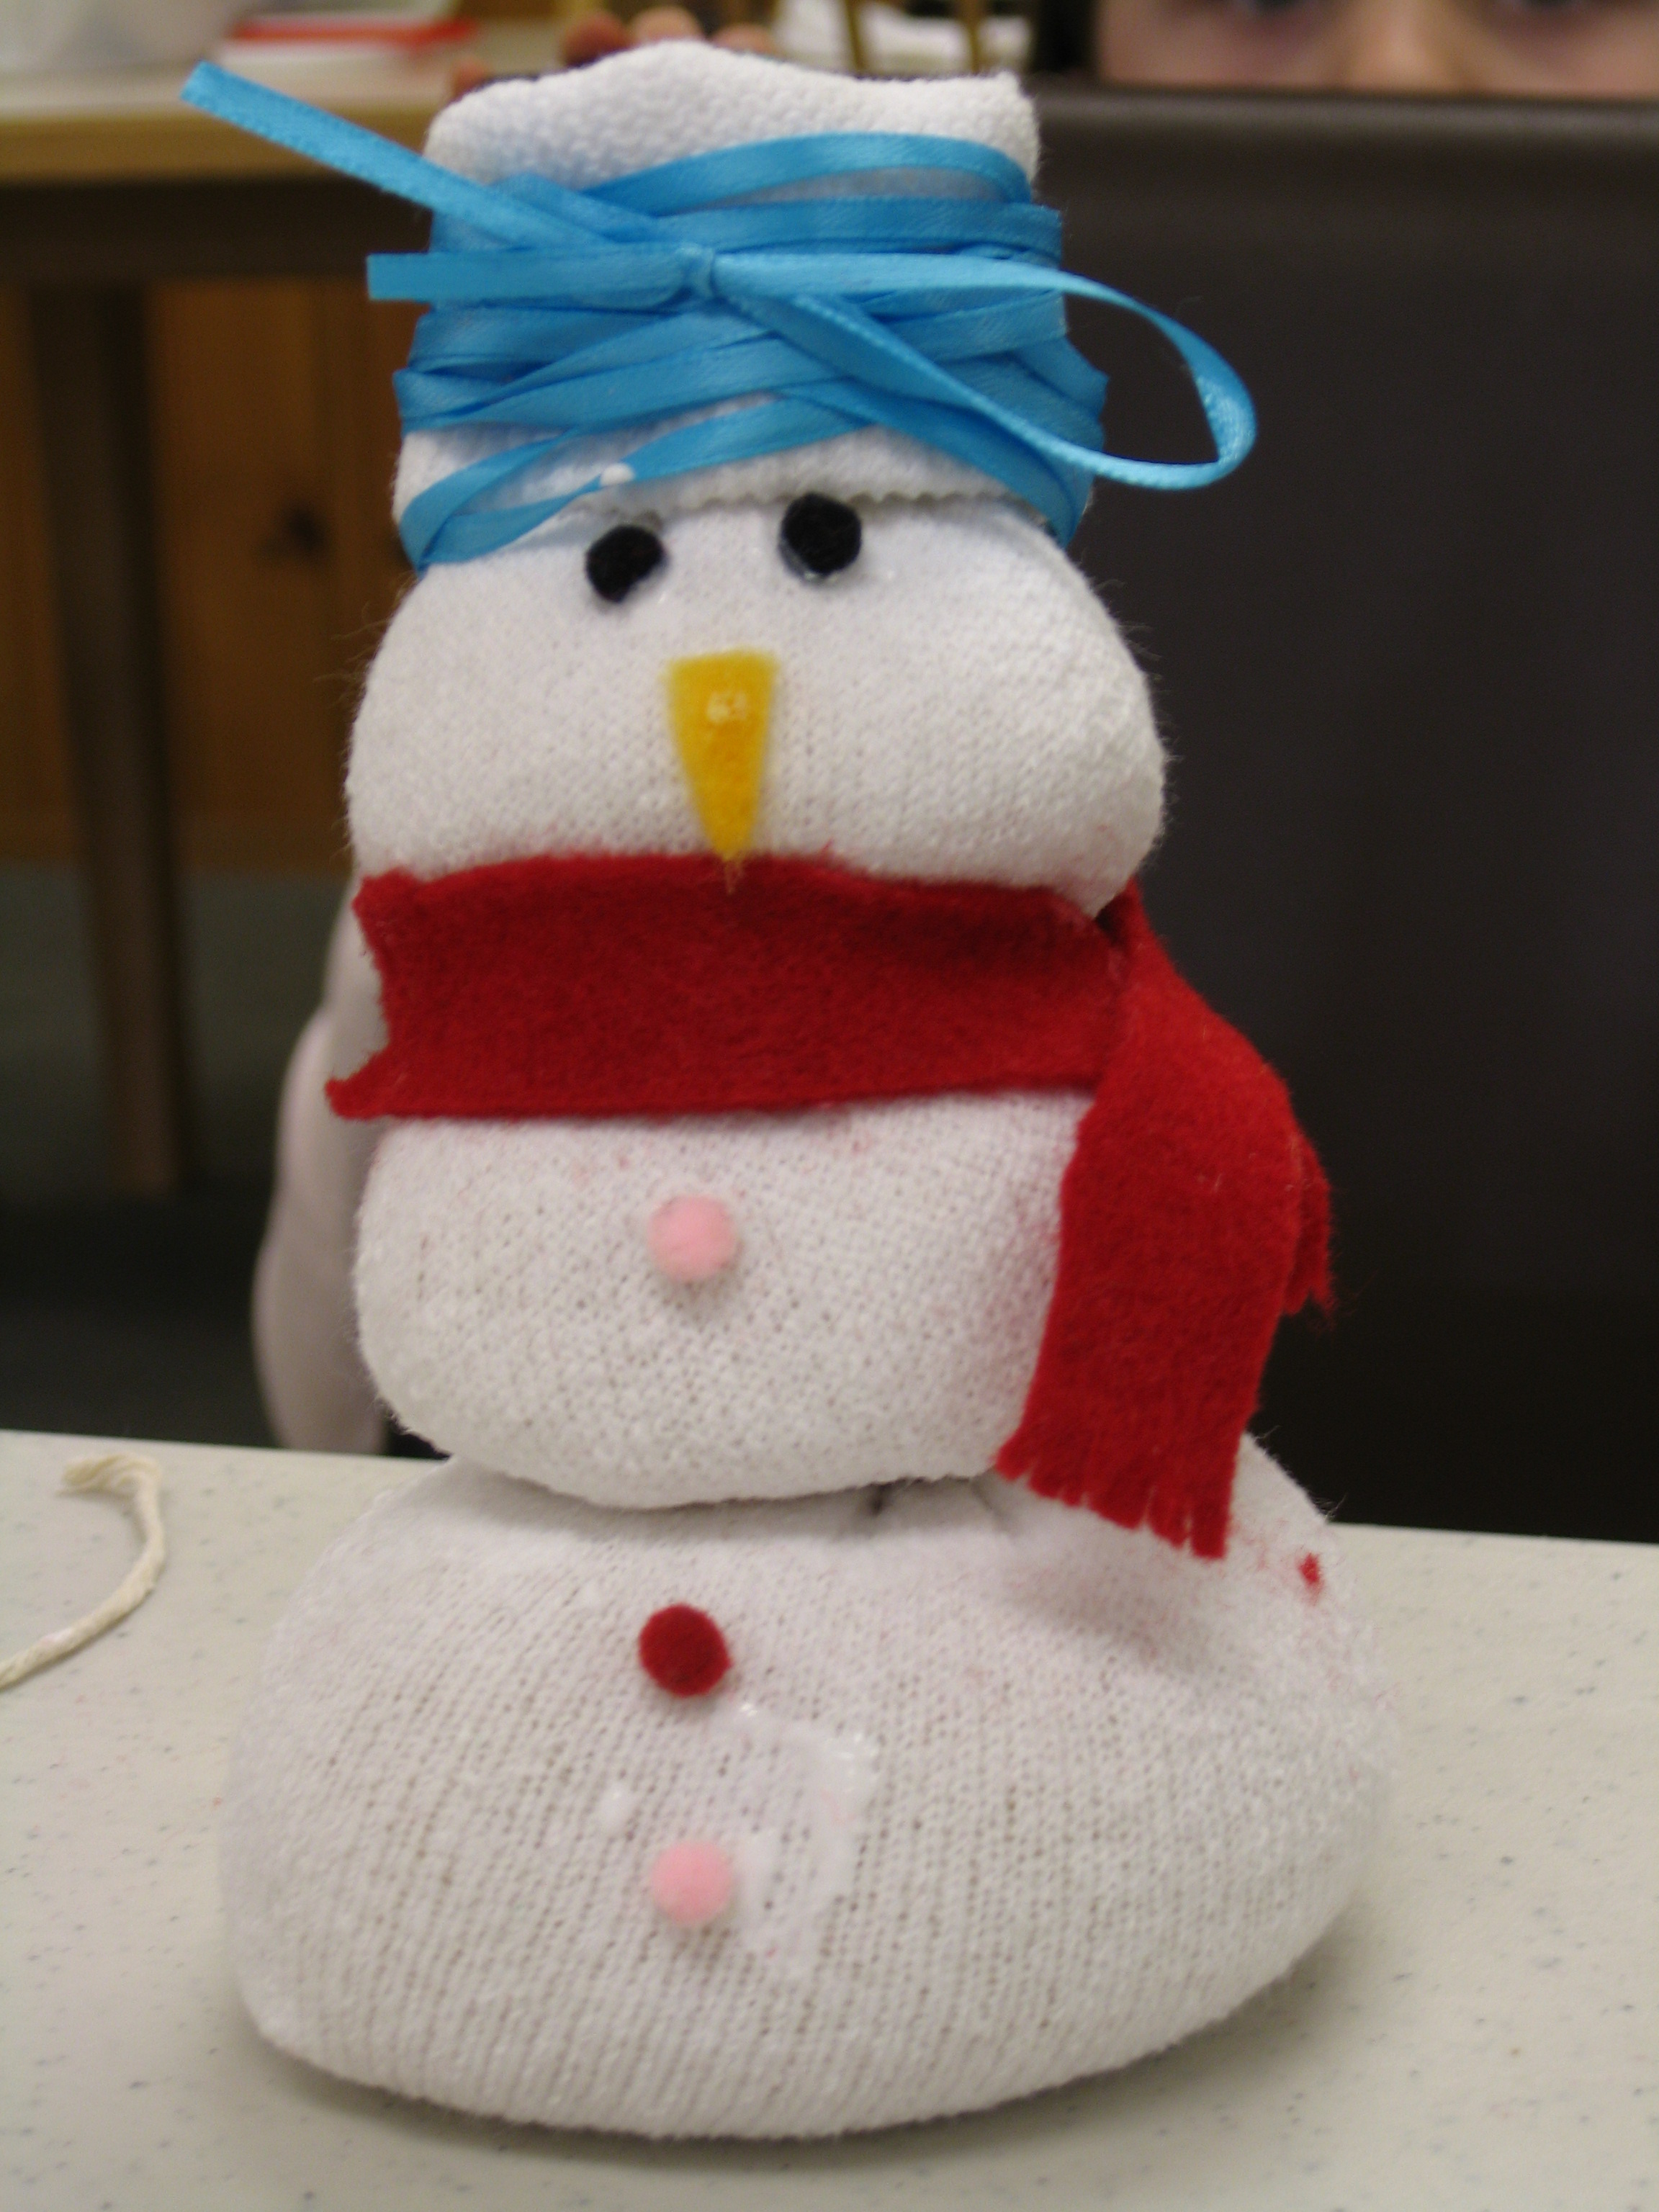 ... stories and this snowman craft, made out of a sock filled with rice